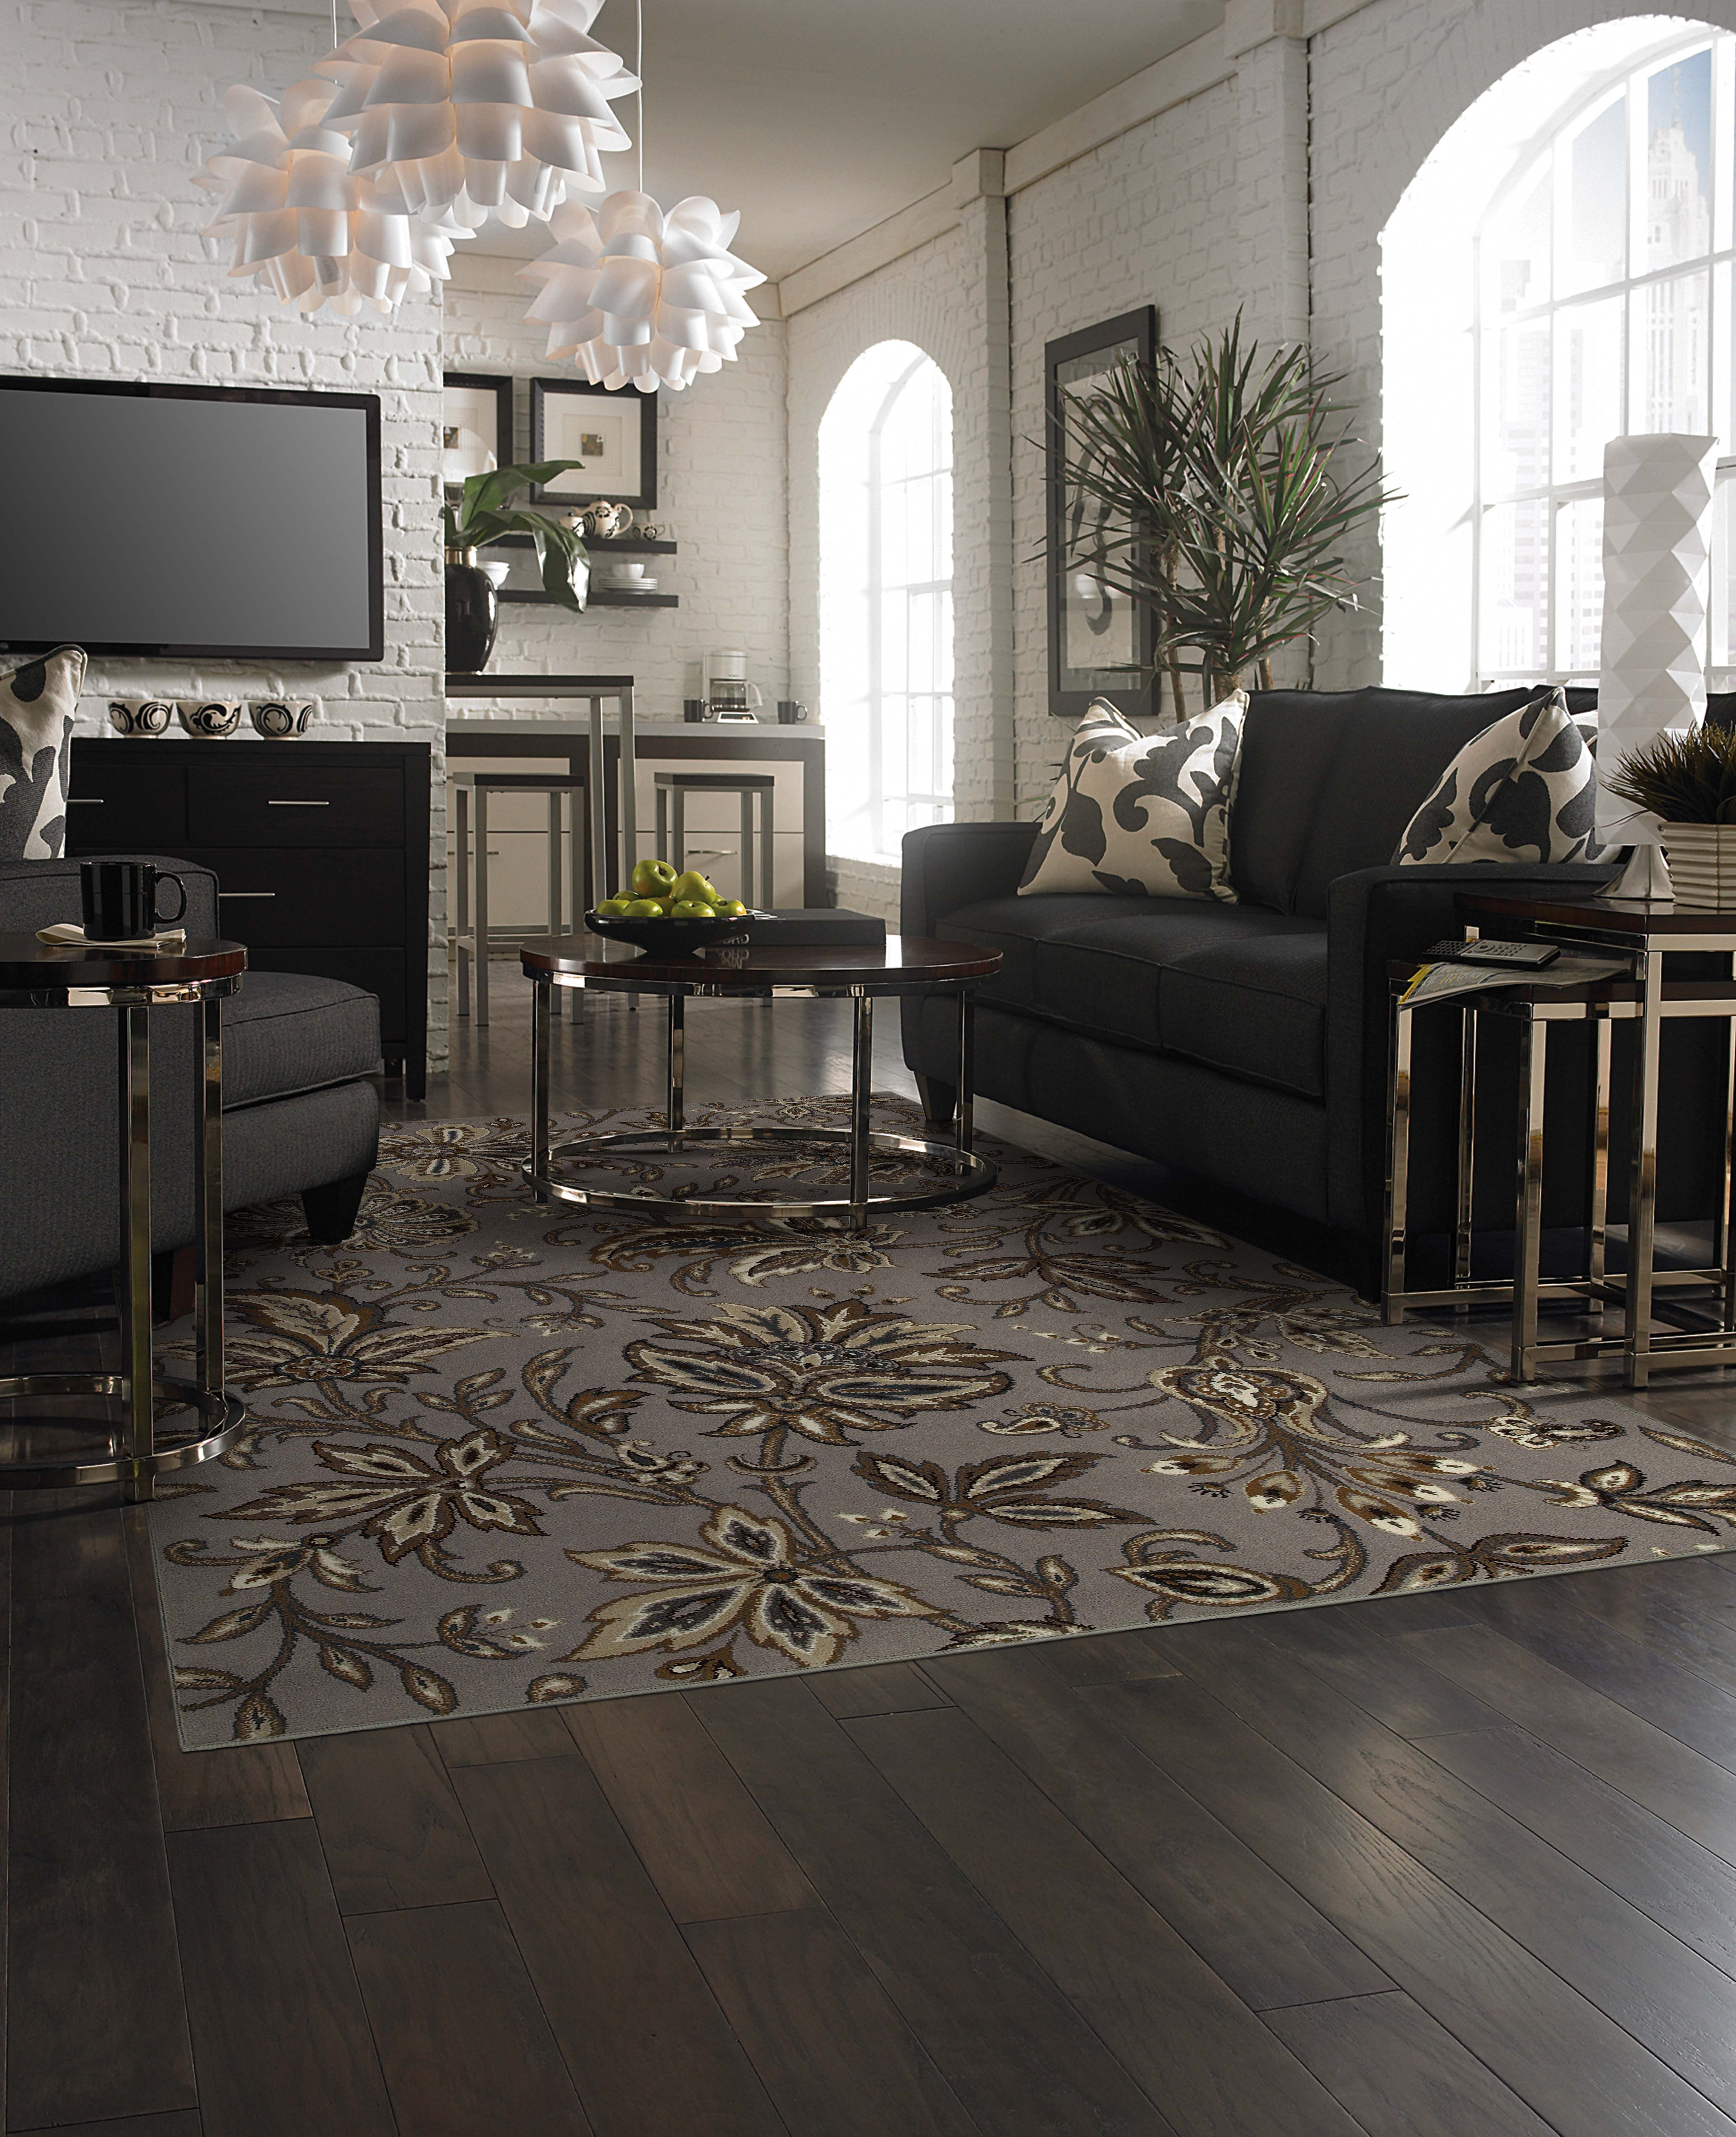 Shaw S Newport Garden Area Rug Is The Perfect Epitome Of Subtle